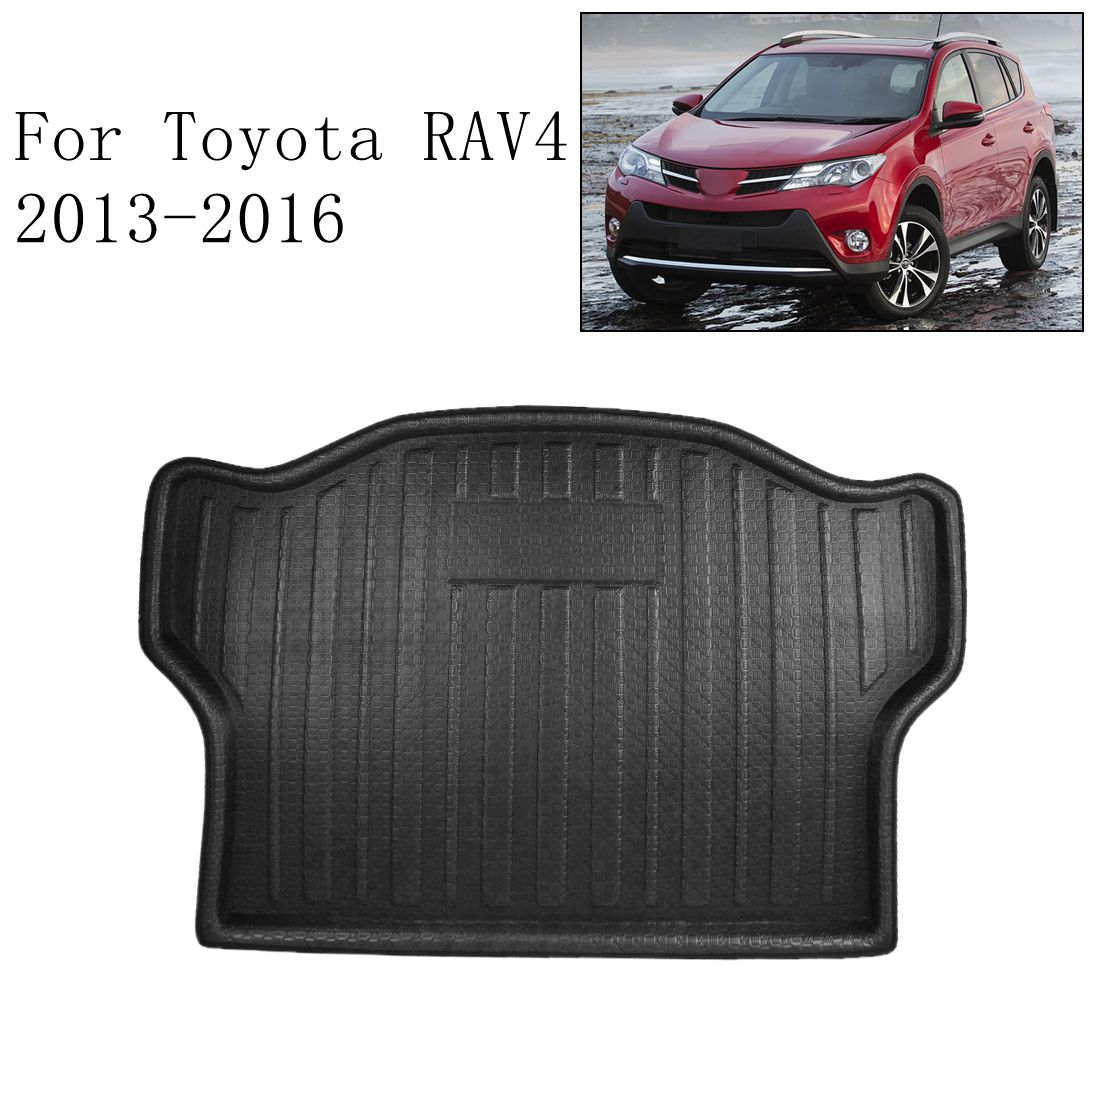 TOYOTA VENZA Rear Cargo Trunk Floor Mat Boot Tray Liner Protector 2013-2016